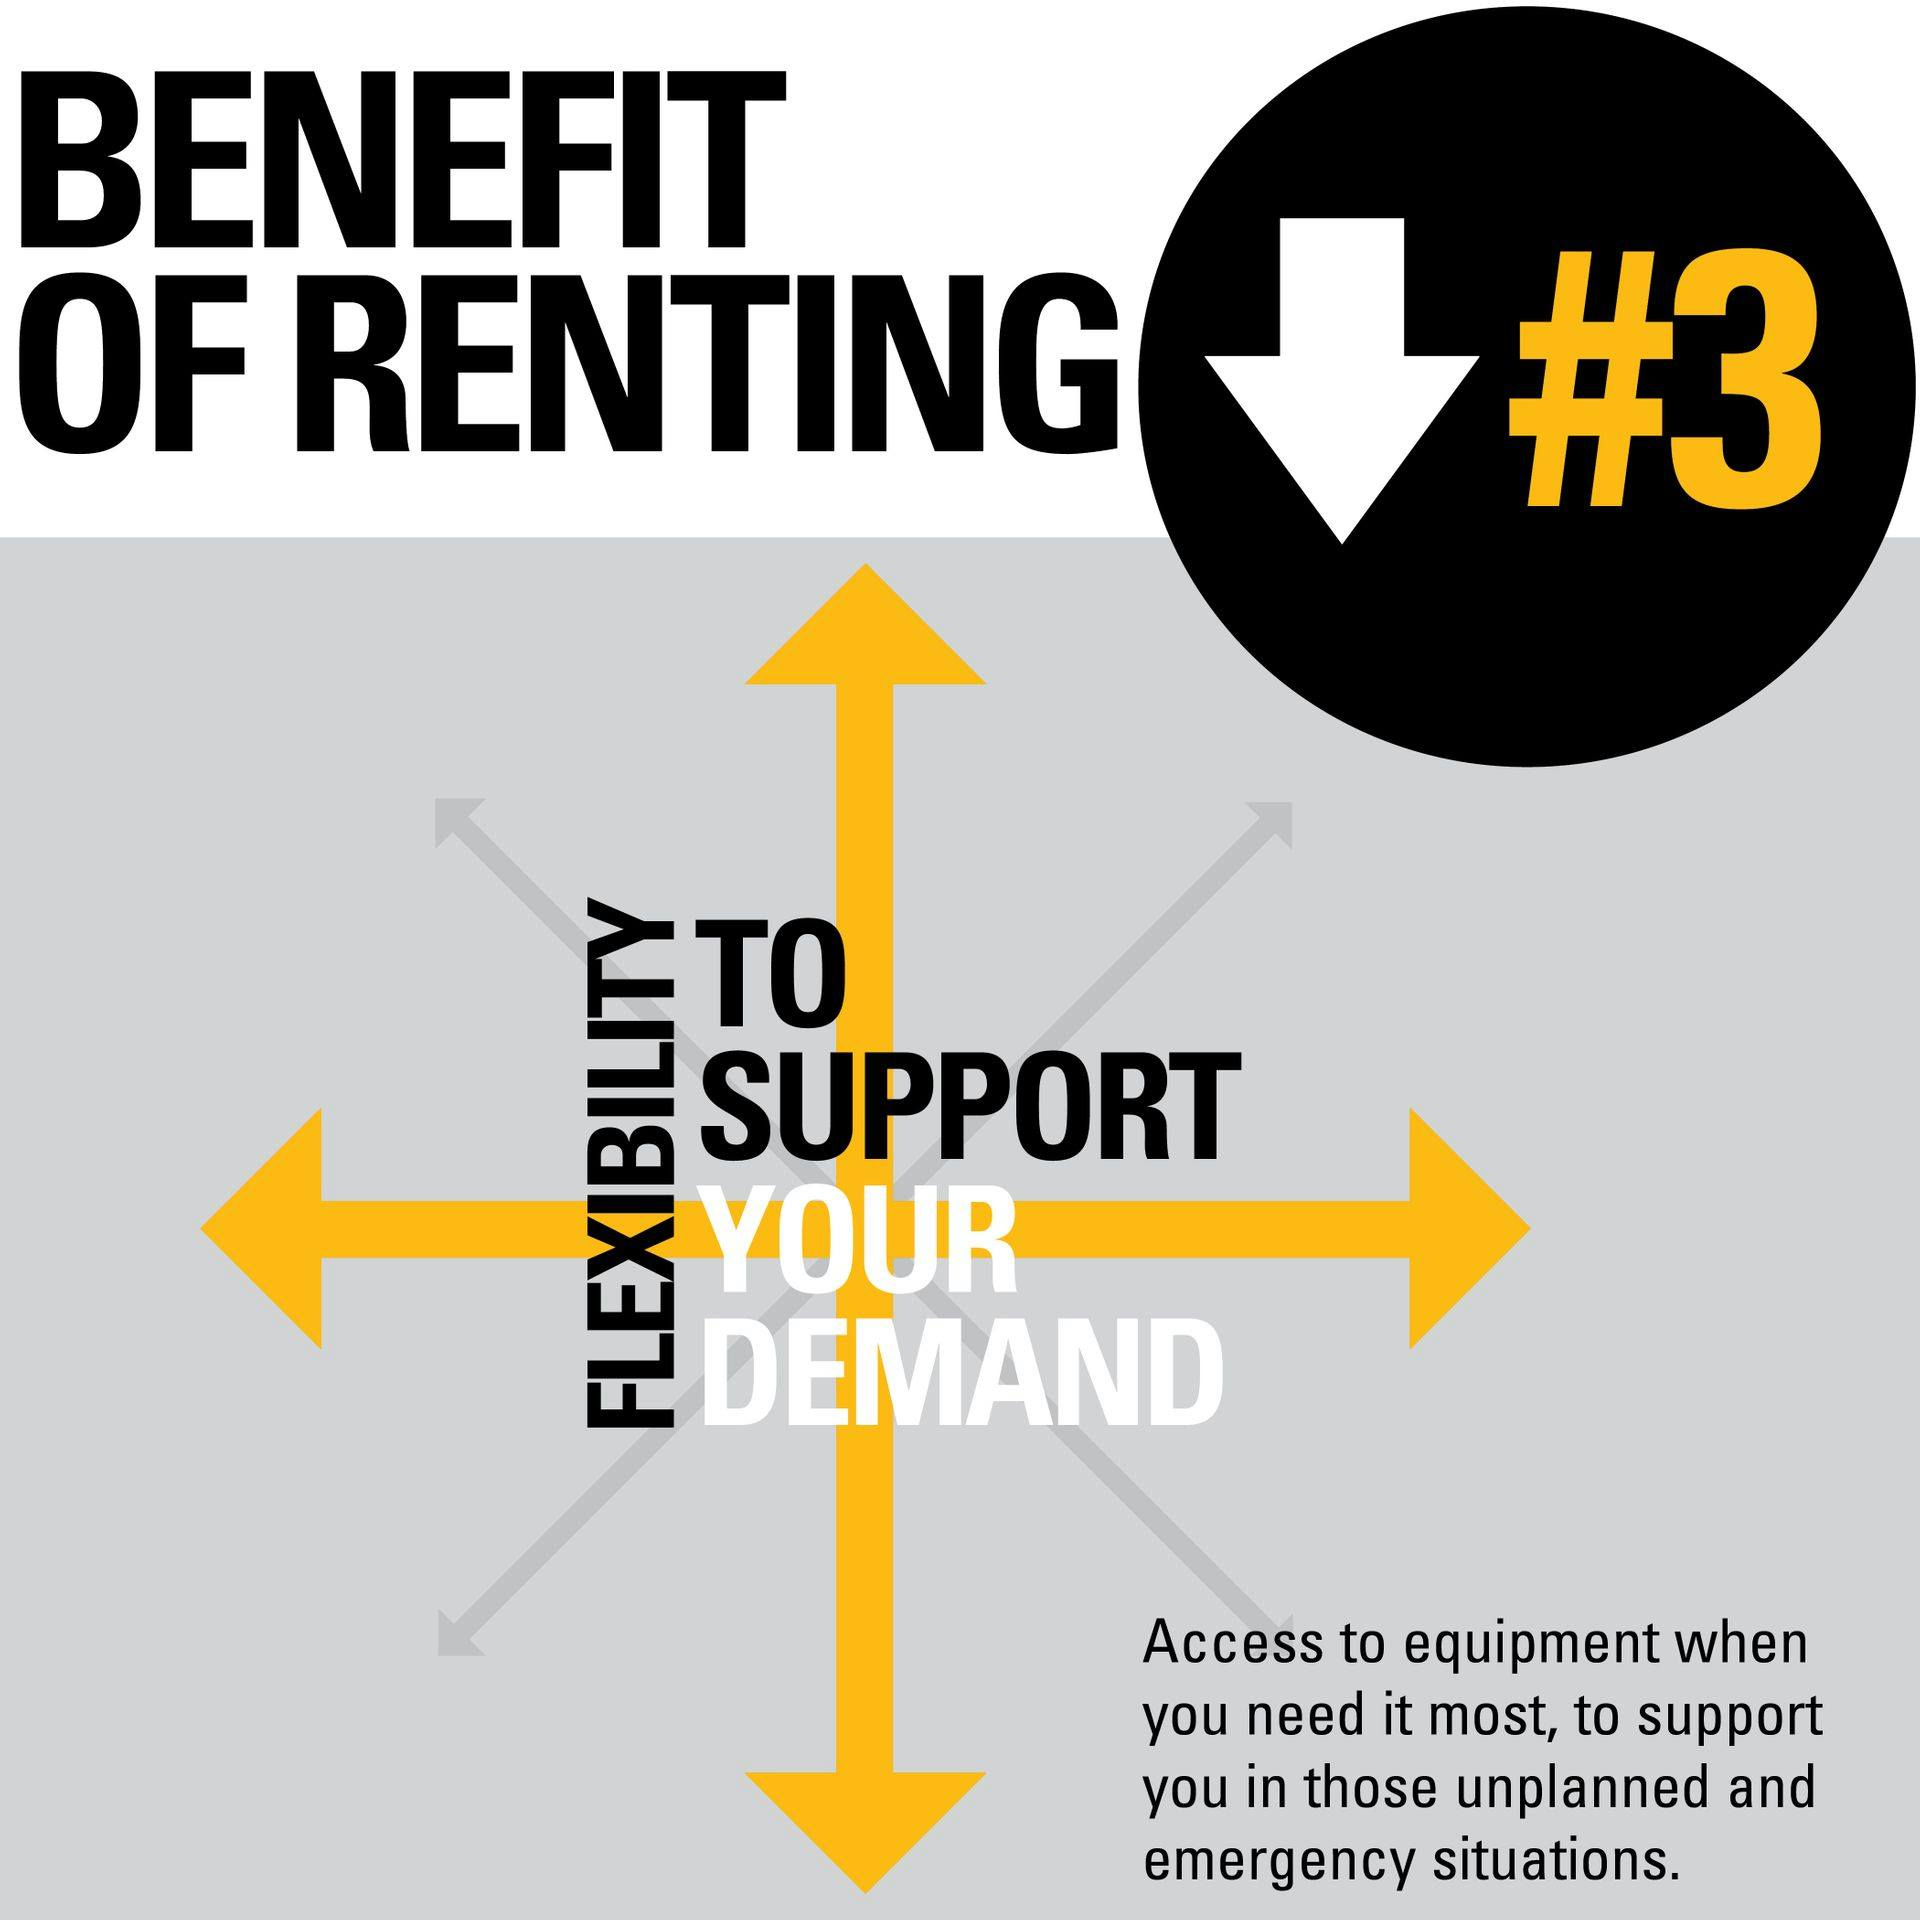 3 Benefit of Renting